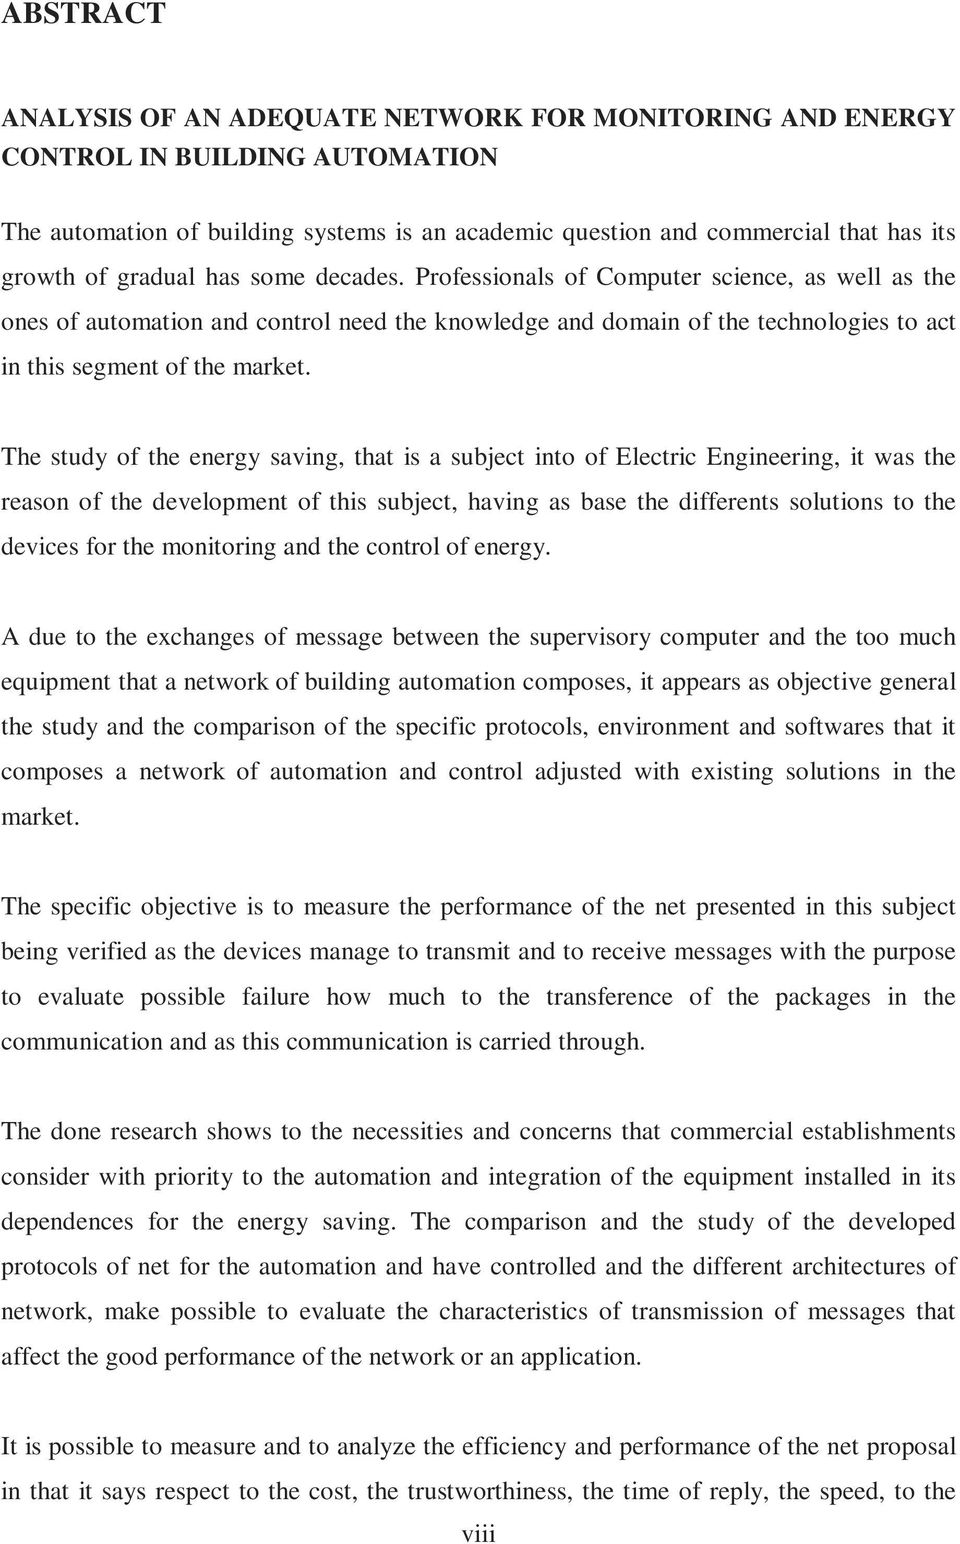 The study of the energy saving, that is a subject into of Electric Engineering, it was the reason of the development of this subject, having as base the differents solutions to the devices for the